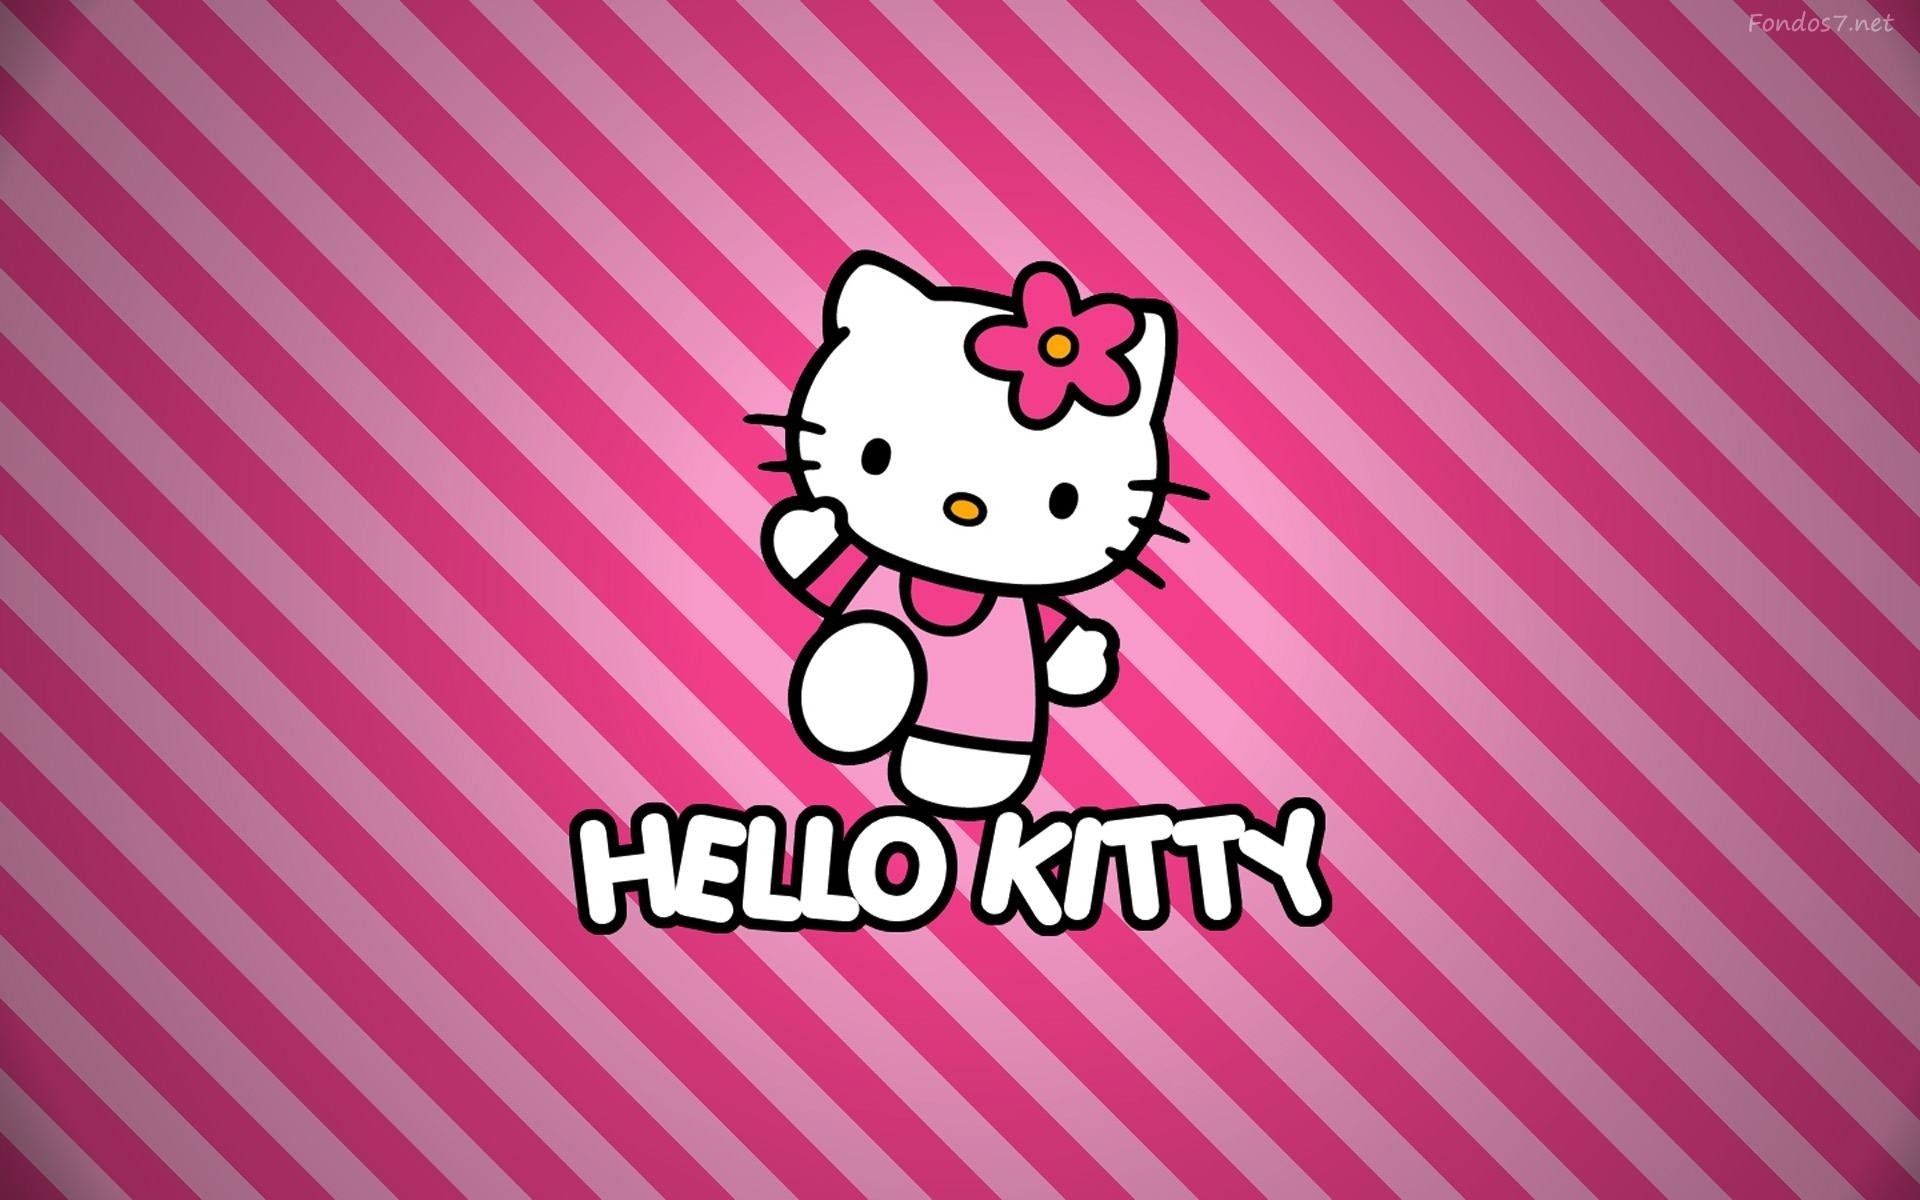 Simple Wallpaper Hello Kitty Iphone 6 - 656308-hello-kitty-with-black-background-1920x1200-for-iphone-6  Gallery_36681.jpg